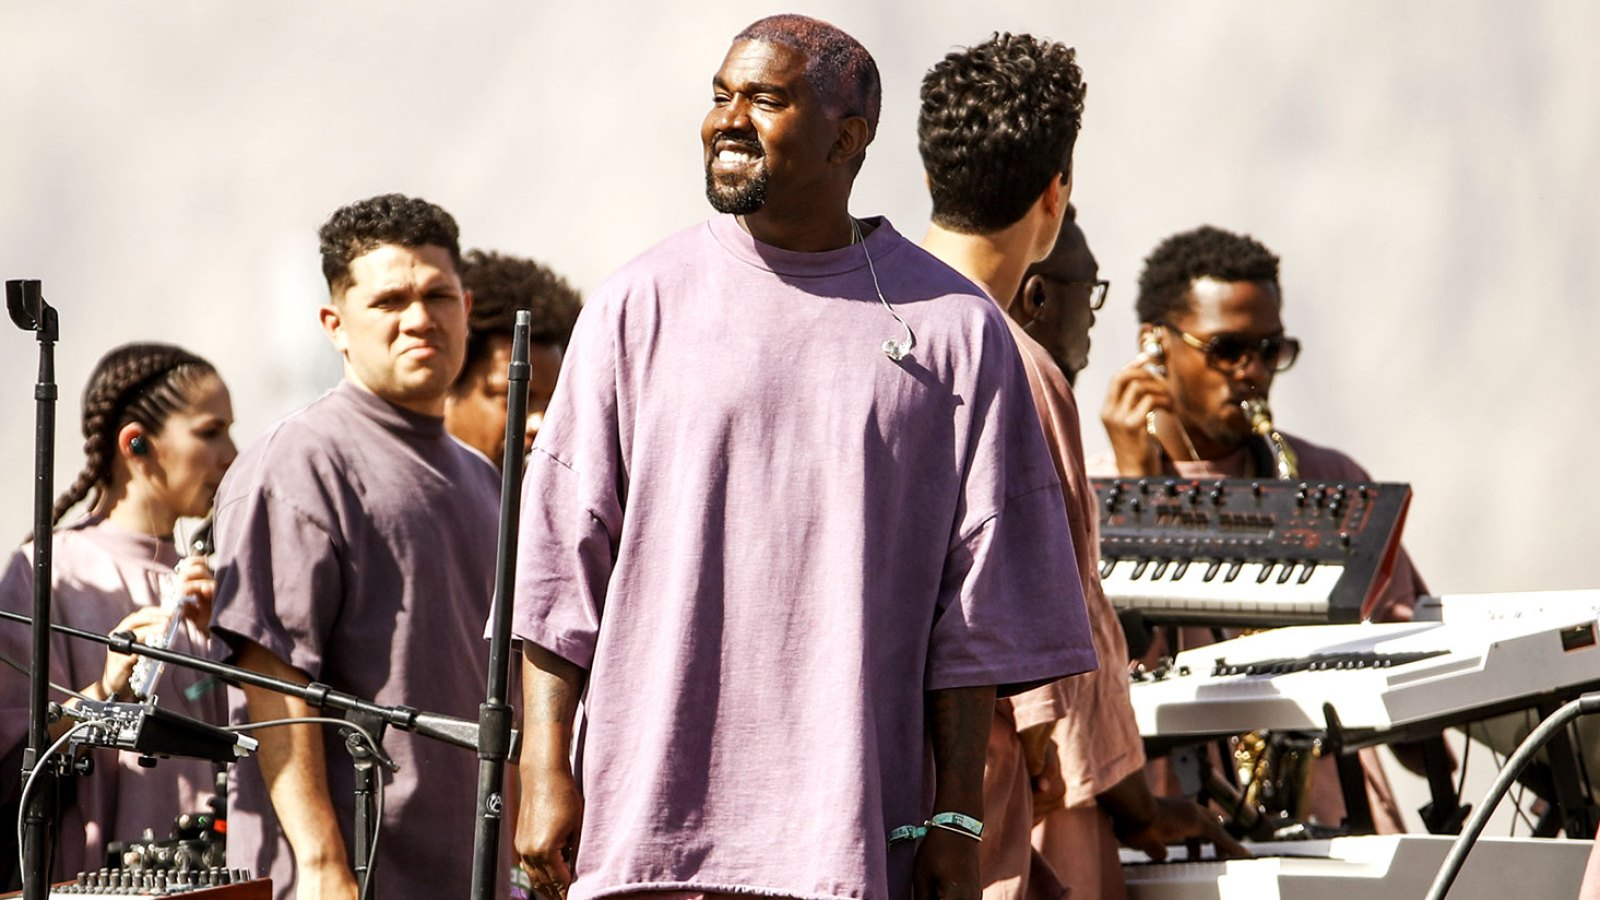 b8987fcc0605f Kanye West Sold Church Merchandise at Coachella and Lots of People Have  Opinions About It